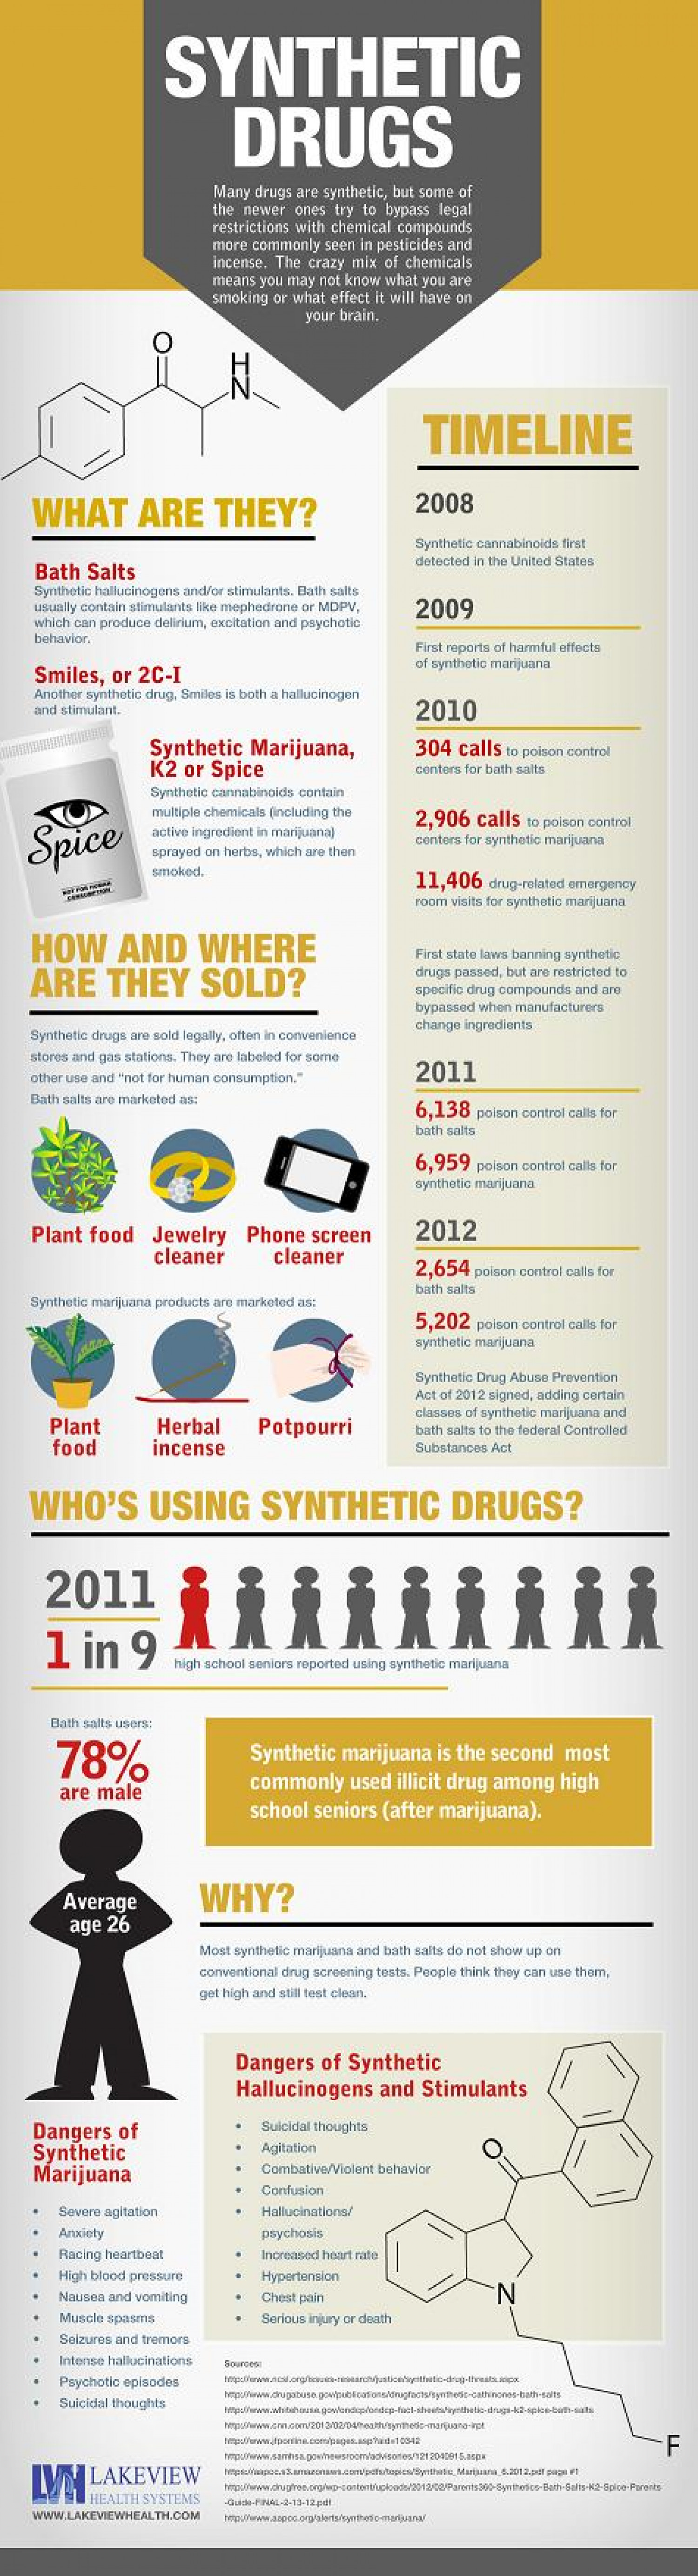 Synthetic Drugs: Who's Using and the Dangers Infographic